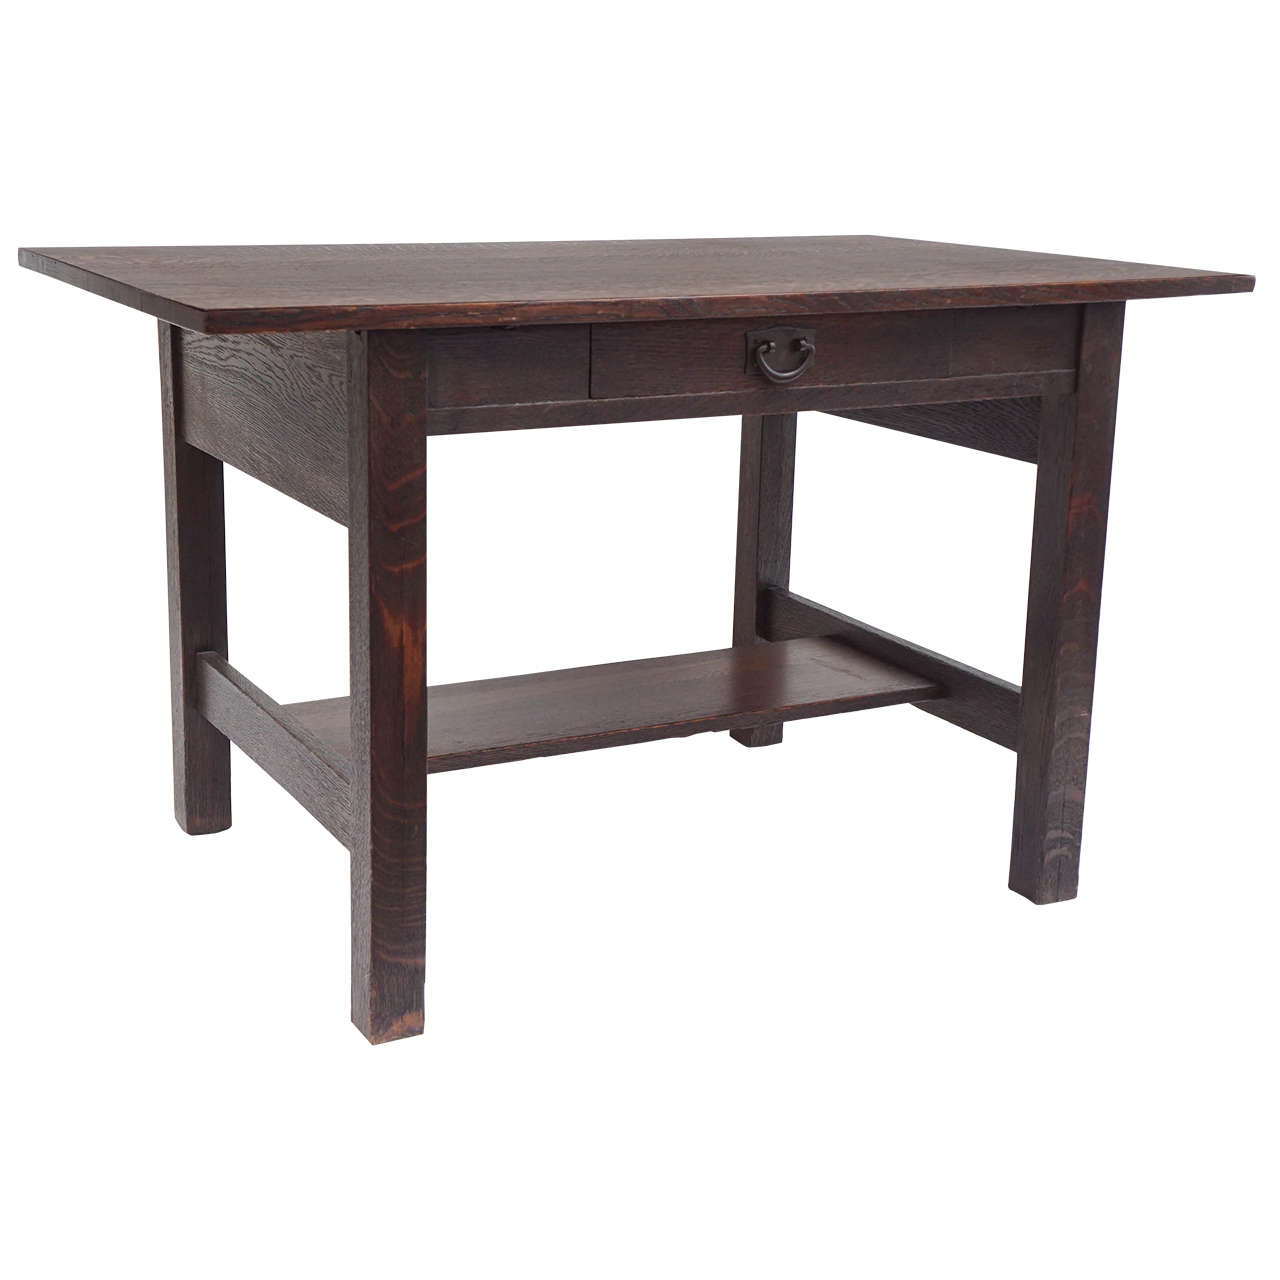 Fort Knox Side Chair Wquick Drawer likewise Quartersawn Heart Pine 2 additionally Furniture likewise Three Legged Coffee Table besides Circle Sawn. on quarter sawn red oak table